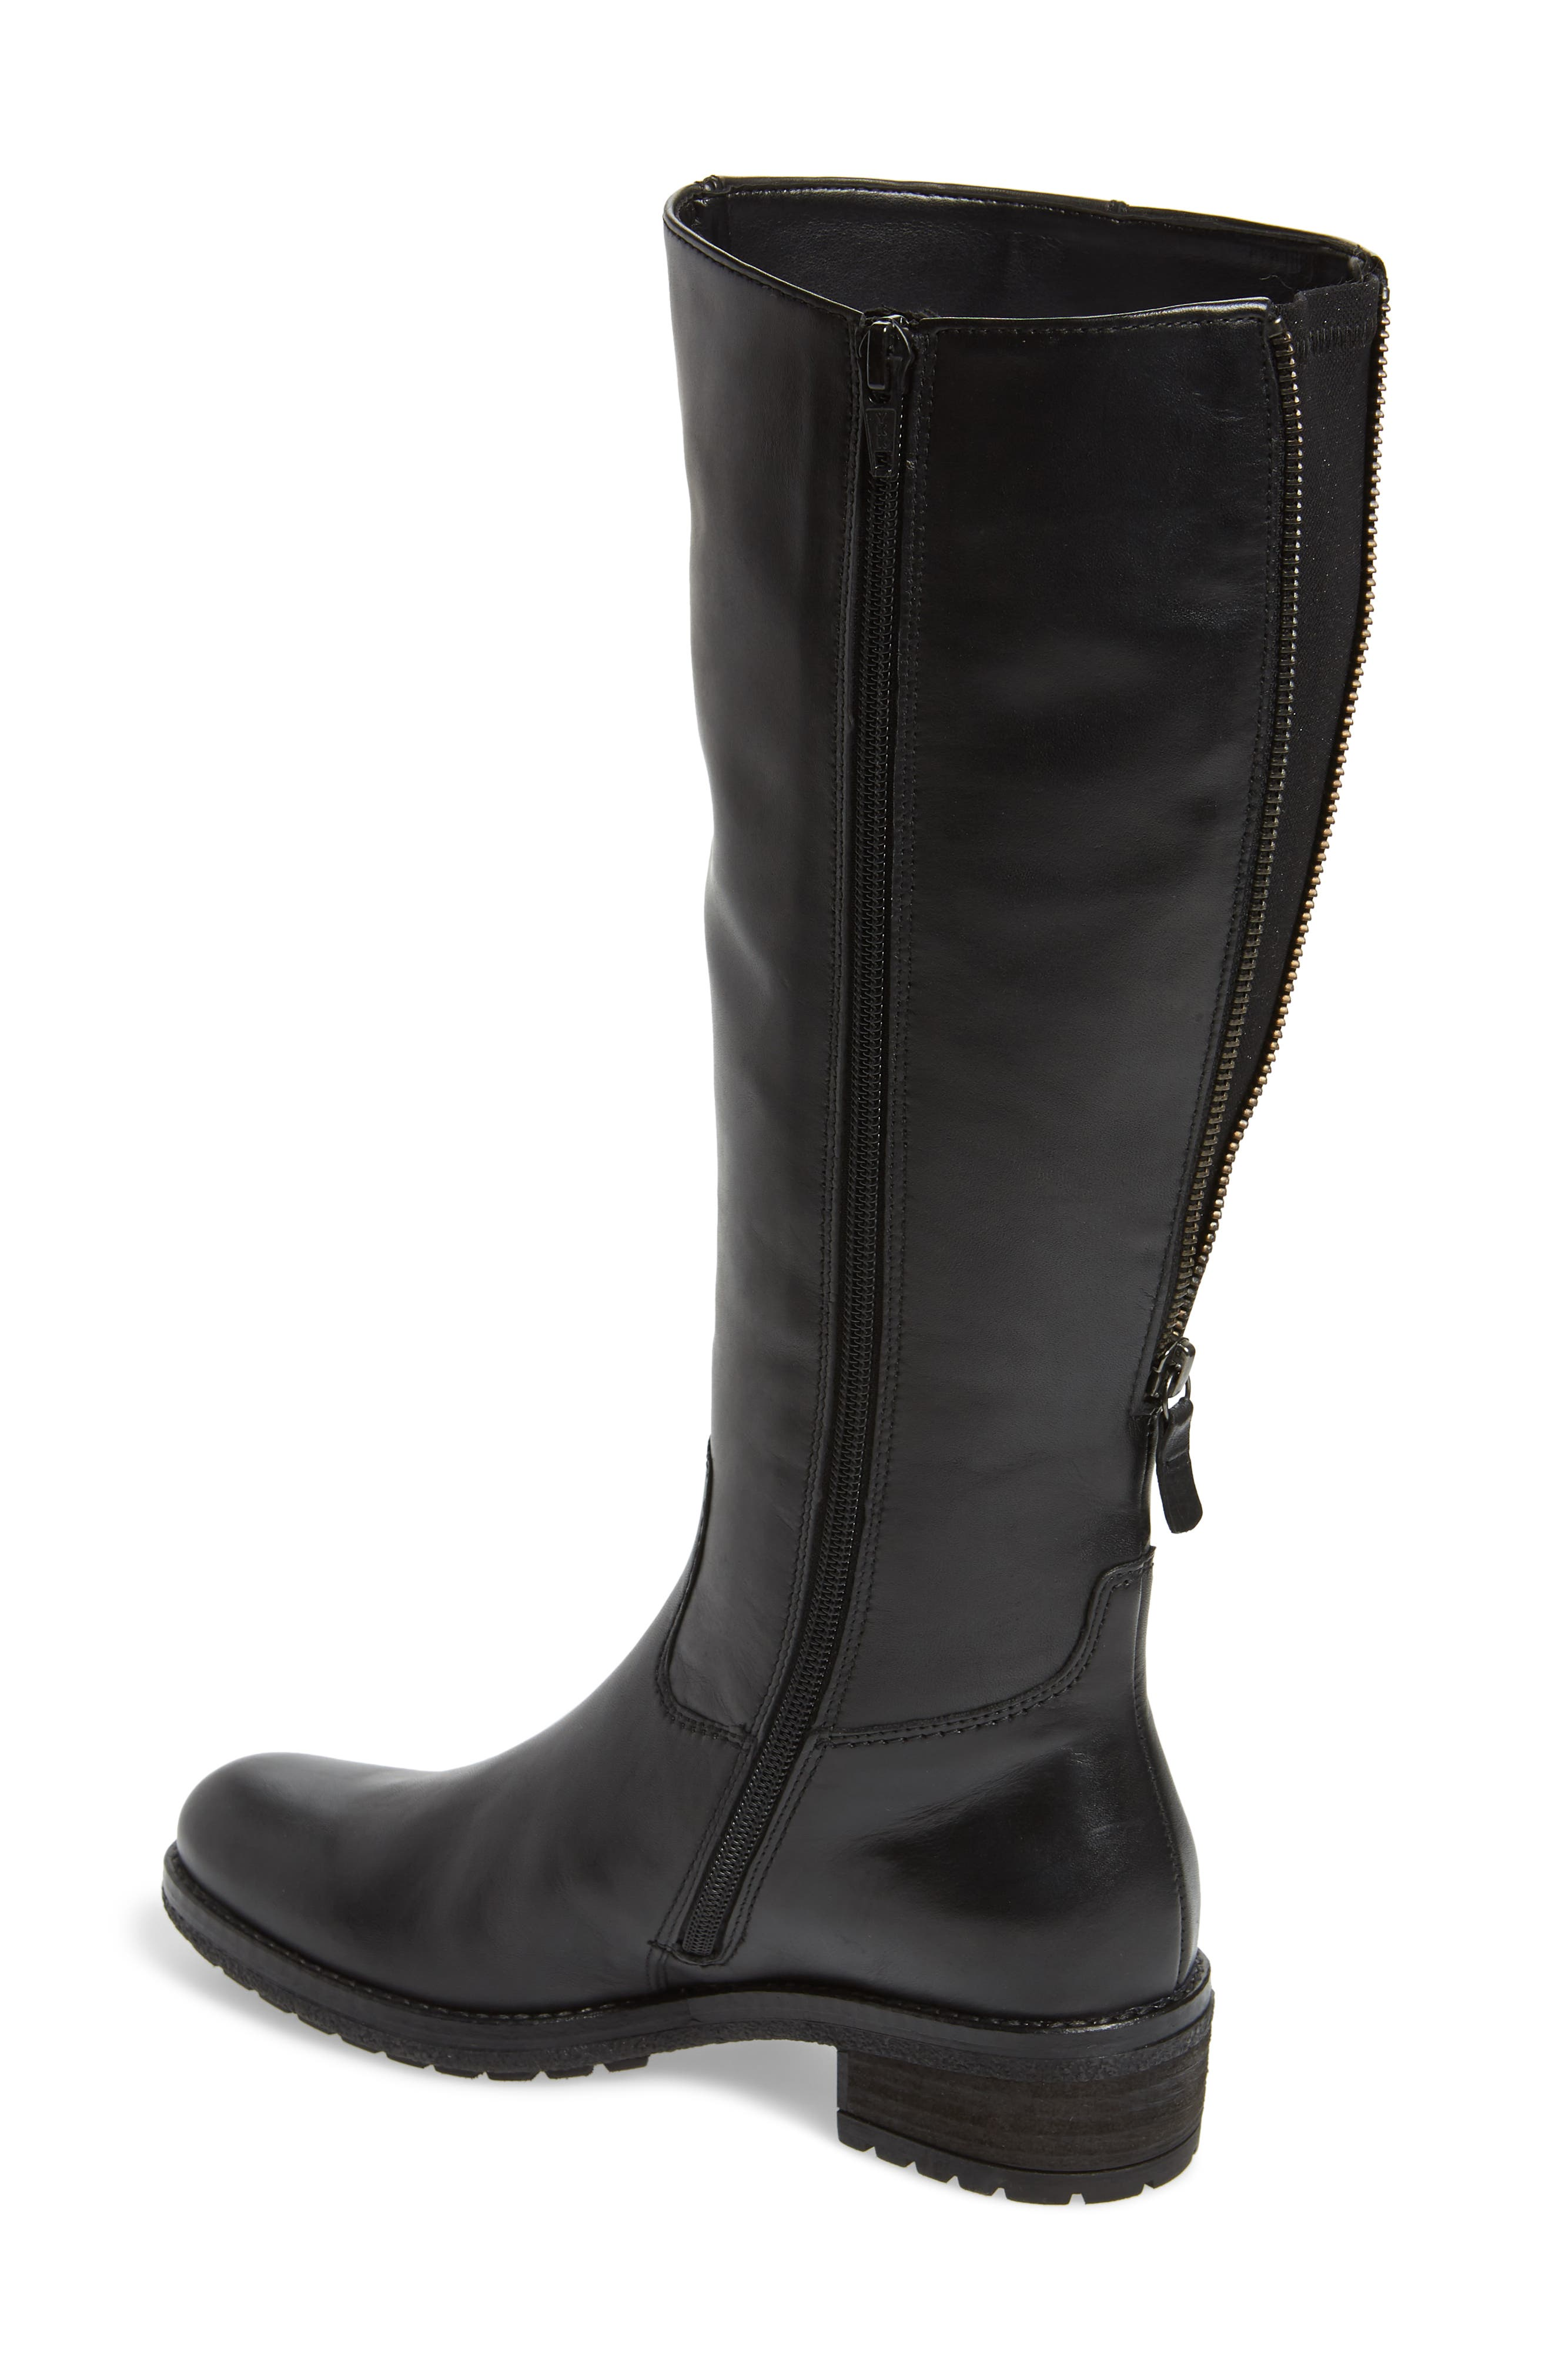 GABOR, Classic Comfort Knee High Riding Boot, Alternate thumbnail 2, color, BLACK LEATHER